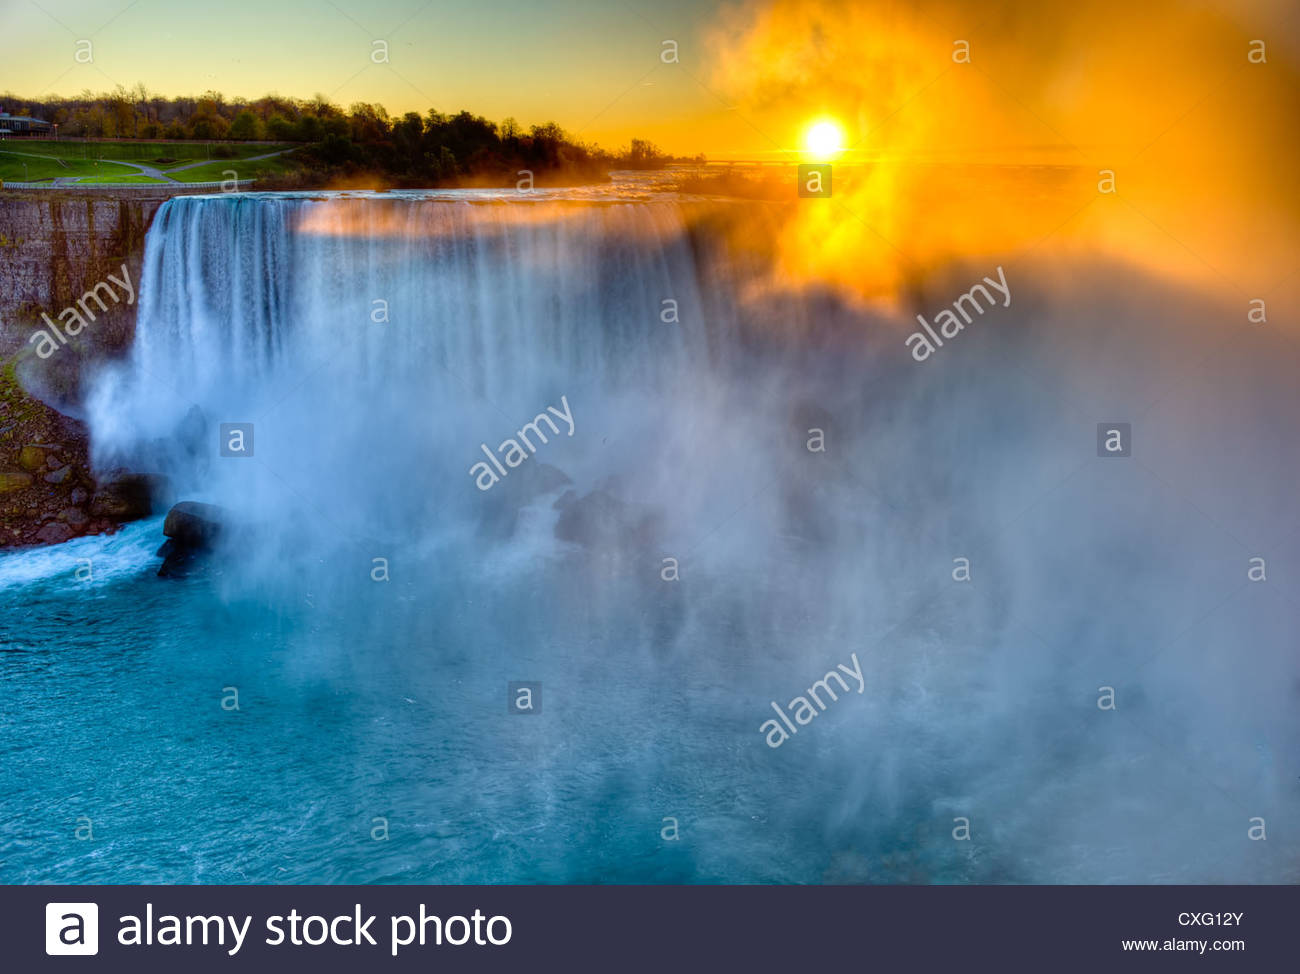 the Right side of the Horse Shoe Falls of Niagara Falls looking from the Canadian side at sunrise. This is an HDR - Stock Image